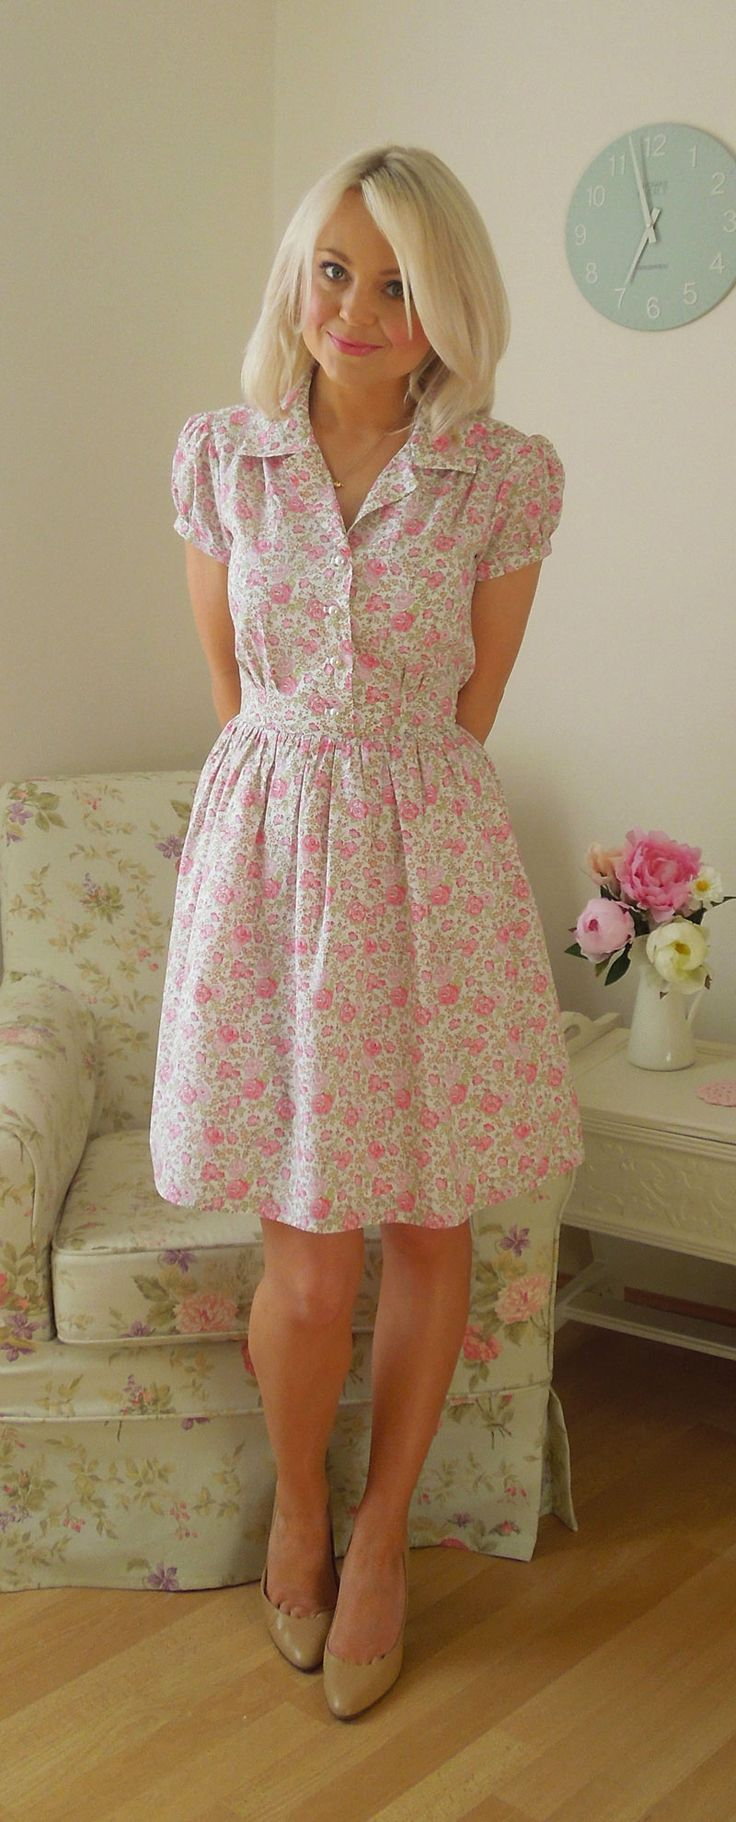 Simplicity 1880 - Ami's take on this is just gorgeous. Liberty prints are a winner